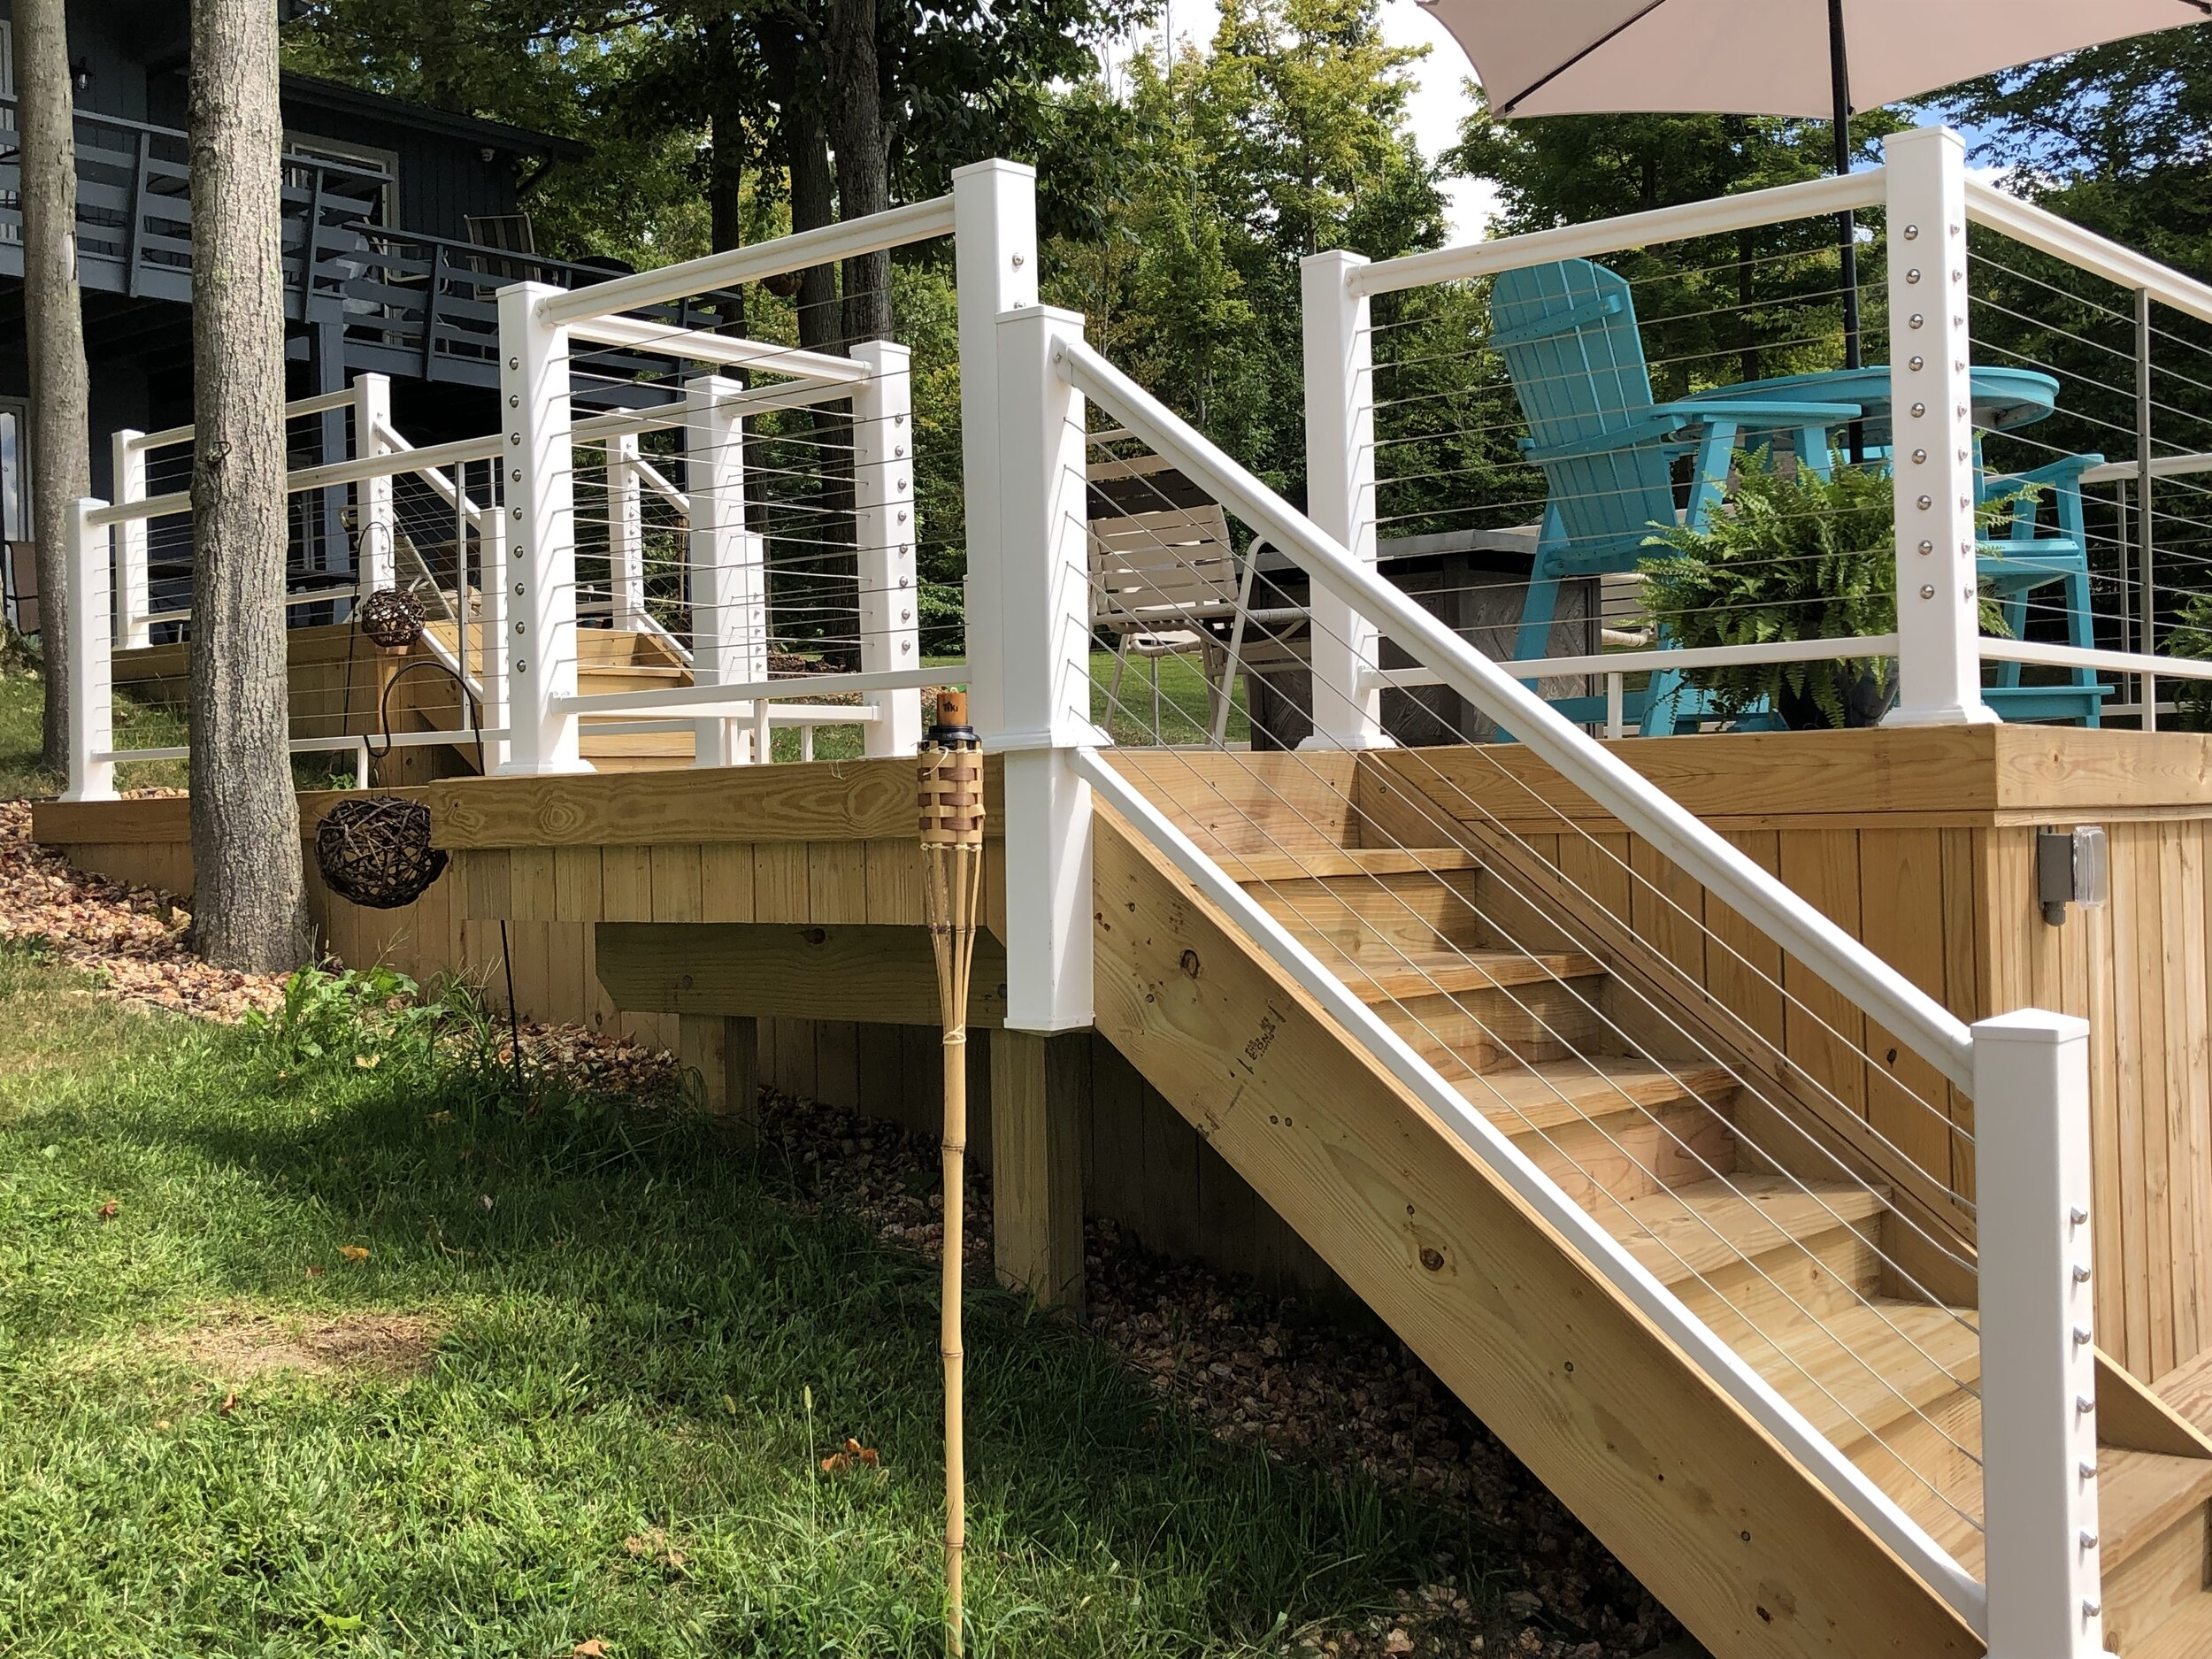 Aluminum Stair Railing For Cable Rail — Color Guard Railing Systems   Wood And Cable Stair Railing   Stairway   Wrought Iron   Staircase Railing   White   Vertical